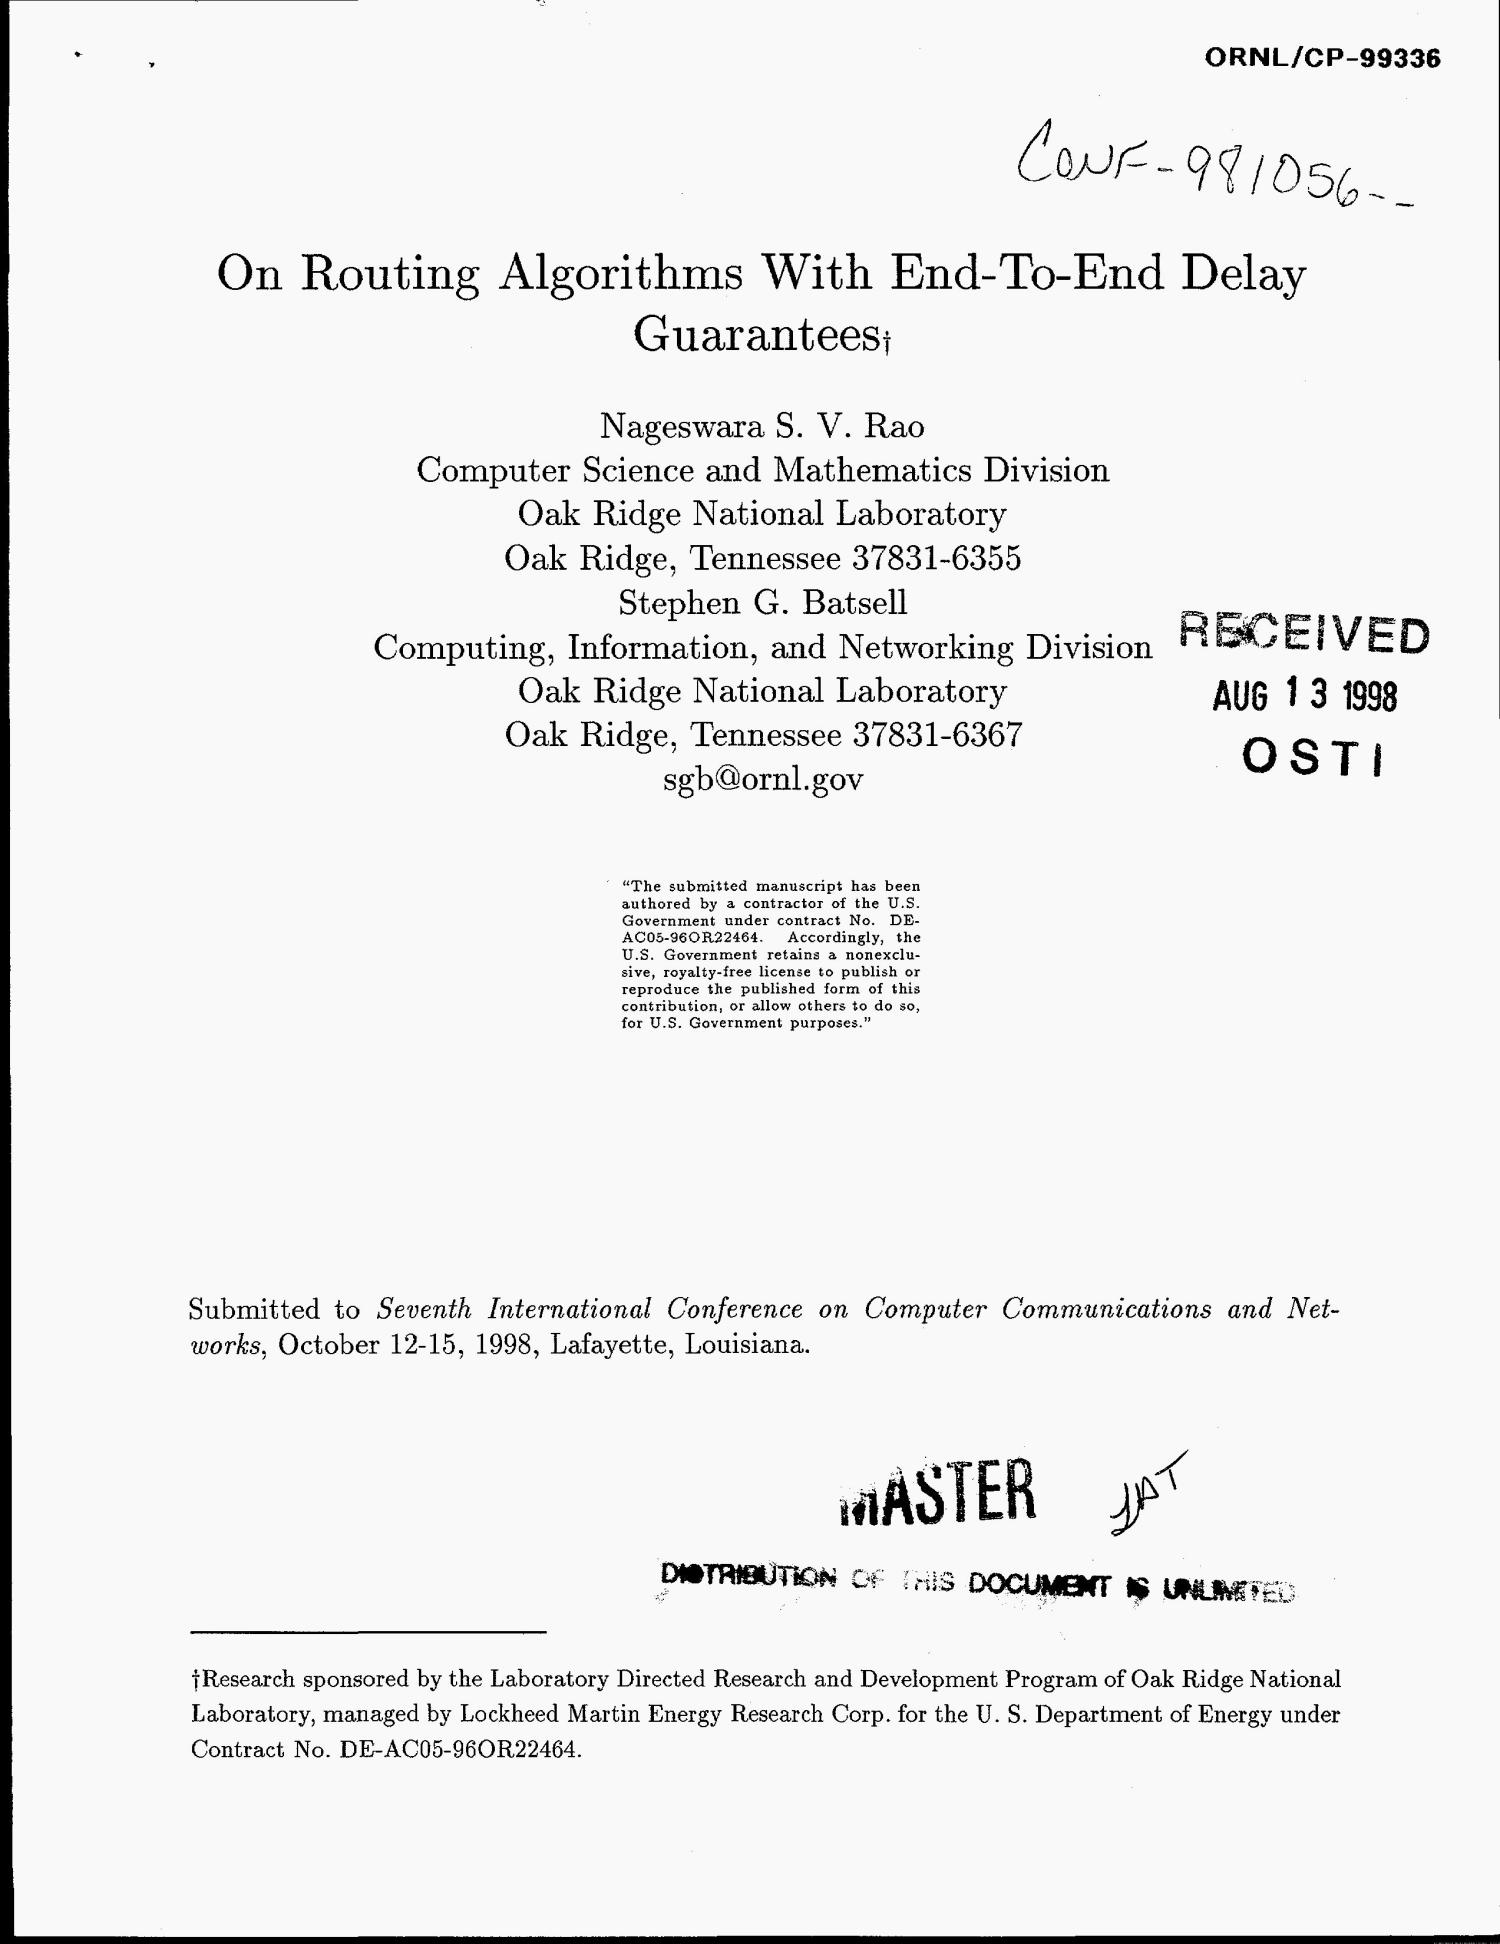 On routing algorithms with end-to-end delay guarantees                                                                                                      [Sequence #]: 1 of 12